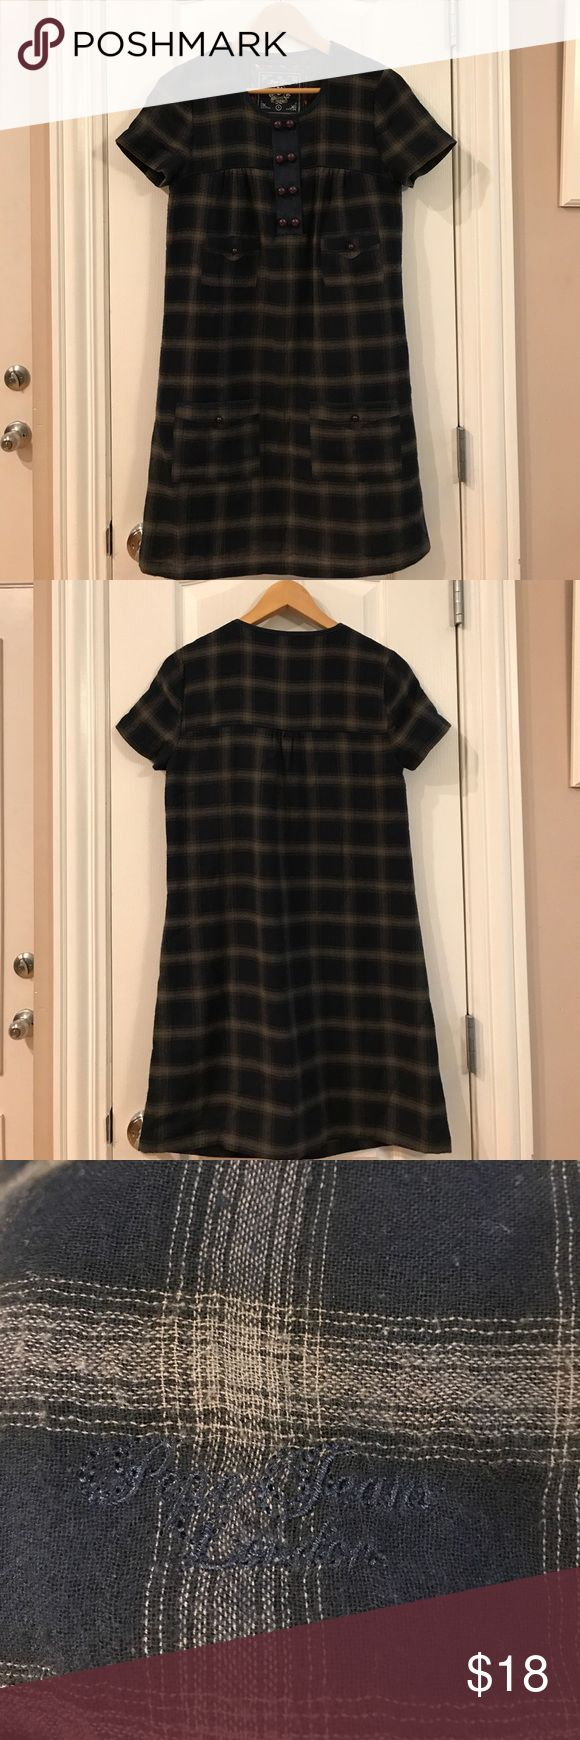 Pepe Jeans London Dress/Tunic Size S Navy Blue and Dark Grey dress or top; great over tight jeans or leggings. Satin liner. Used condition but no tear or stain. Size Small. Tops Tunics